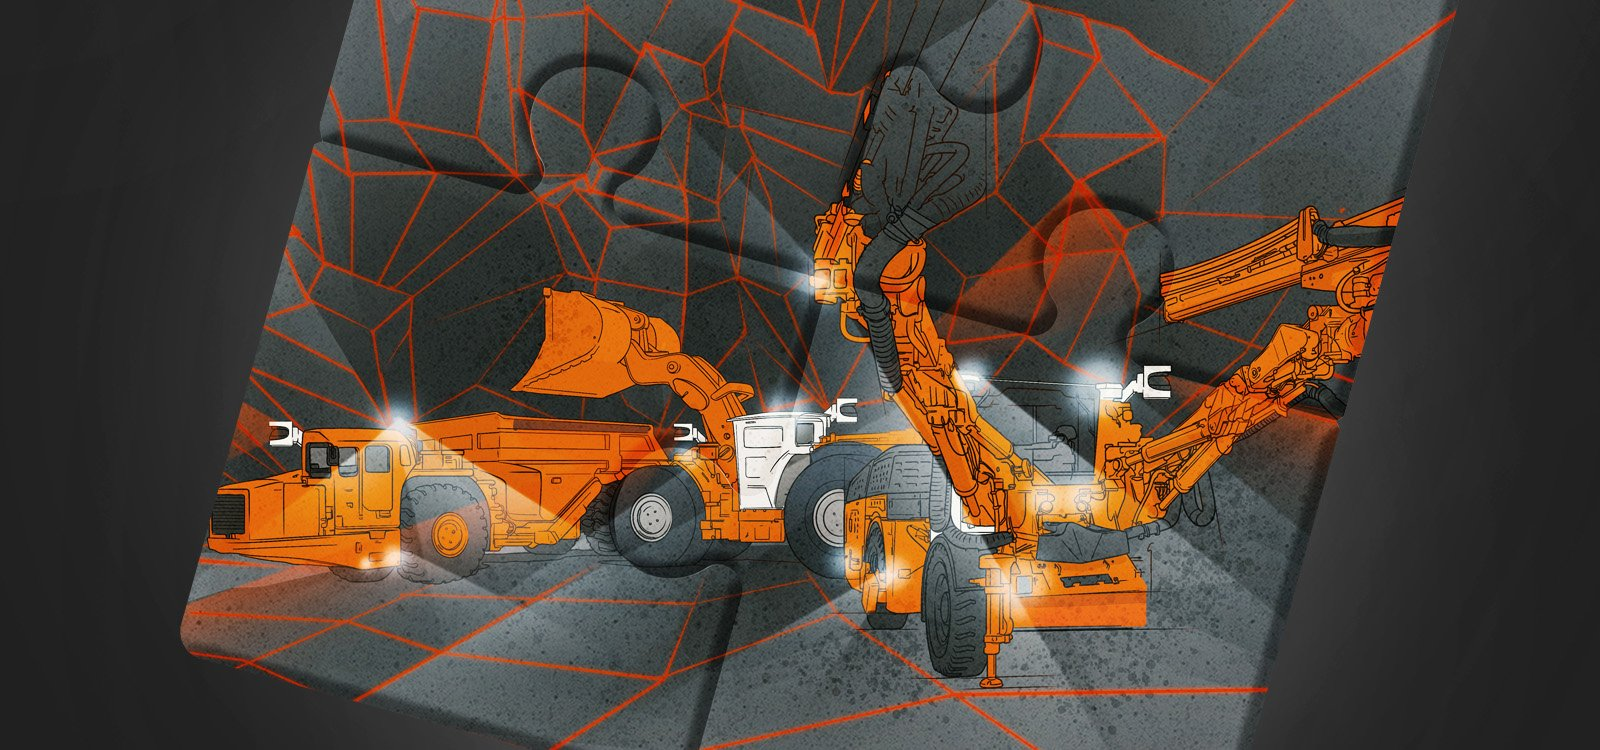 <p>Incorporating new technological concepts into product designs increases their productivity, reduces total cost of ownership and improves safety and reliability.</p>